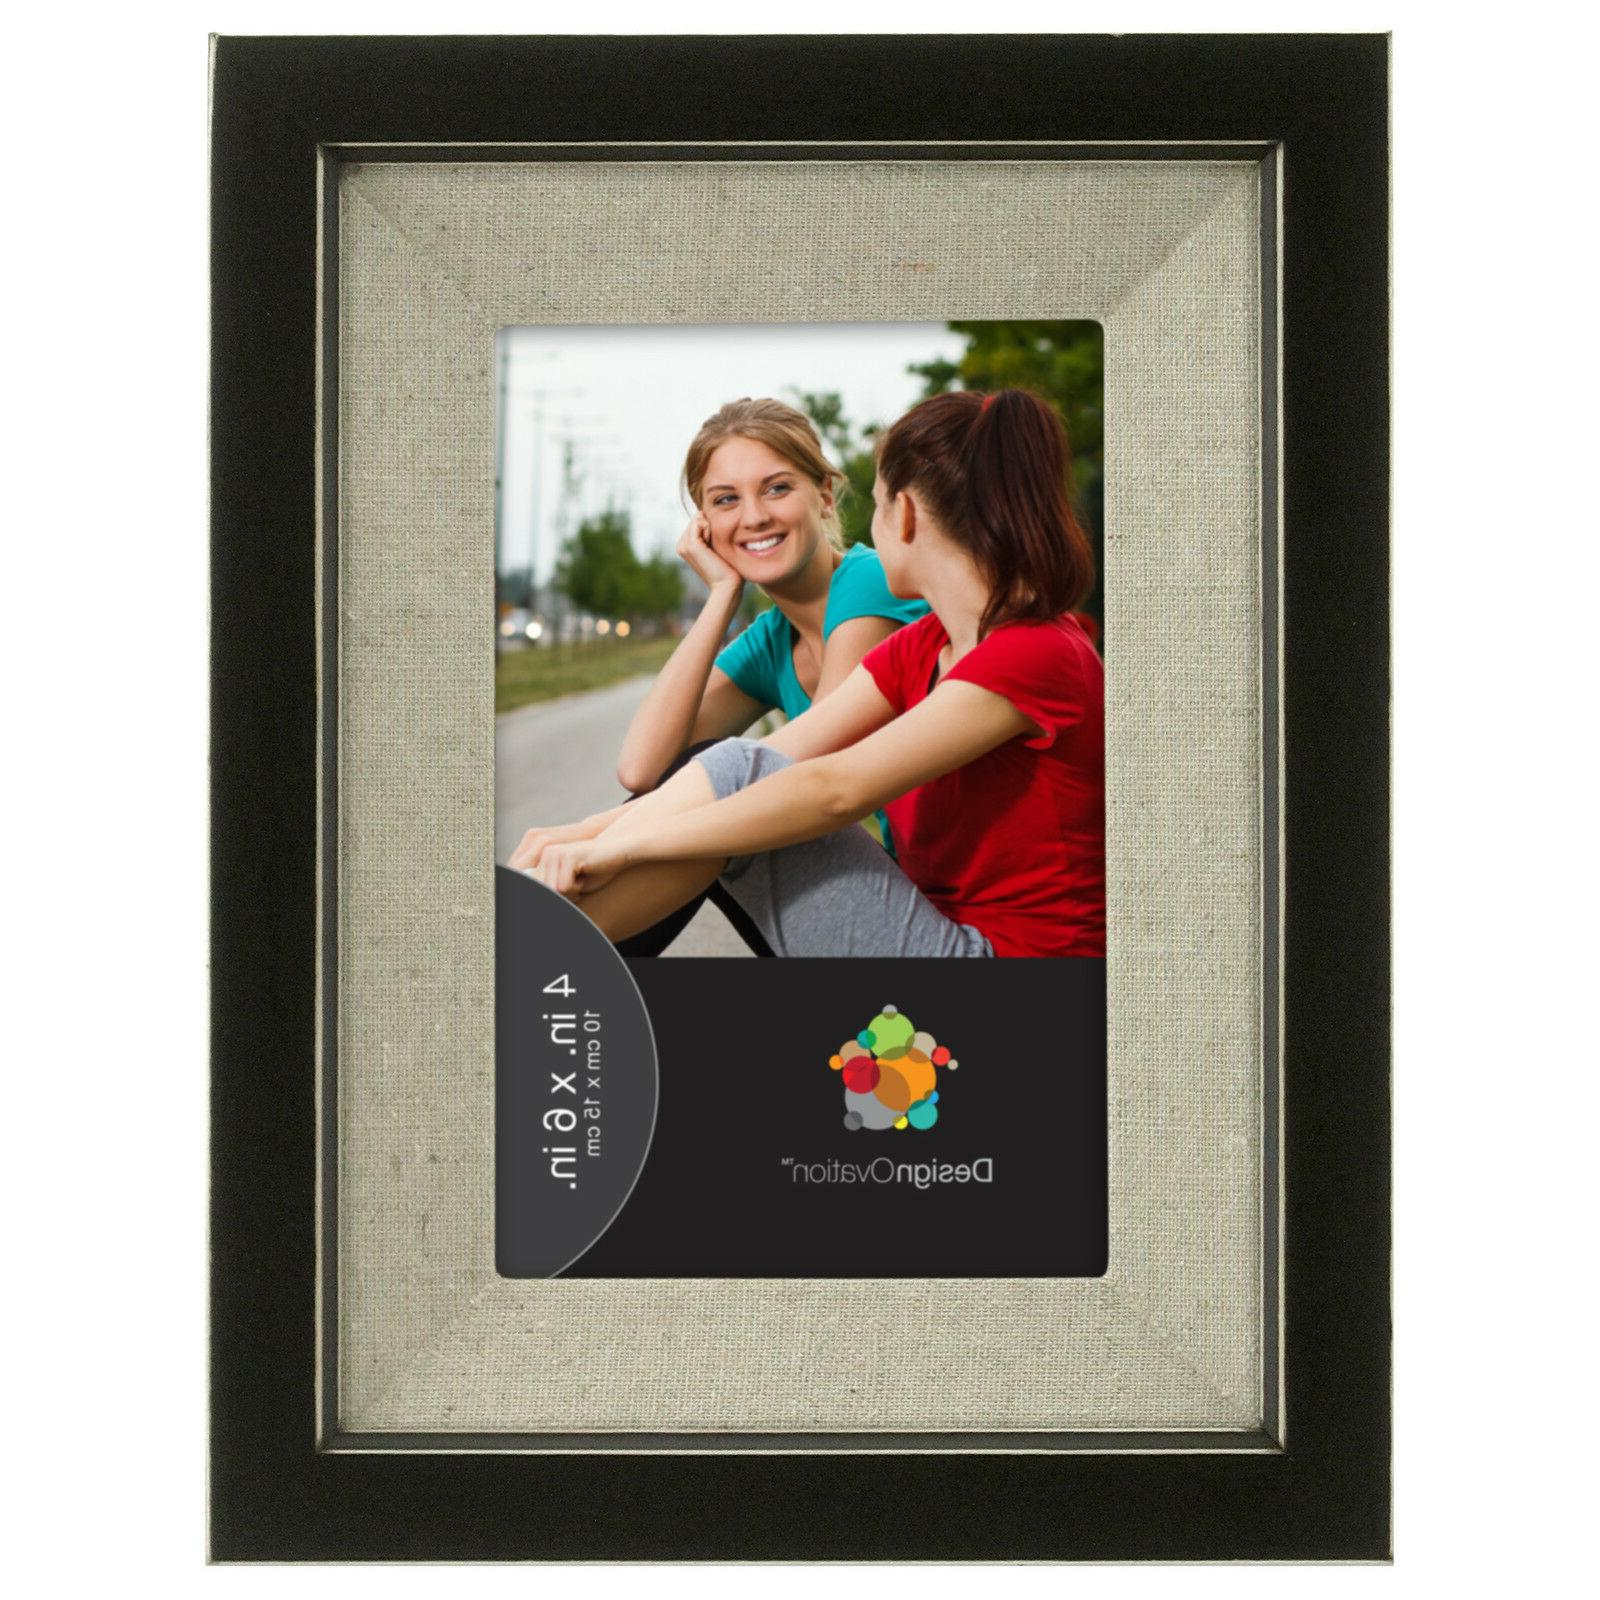 distressed black wood picture frame with linen